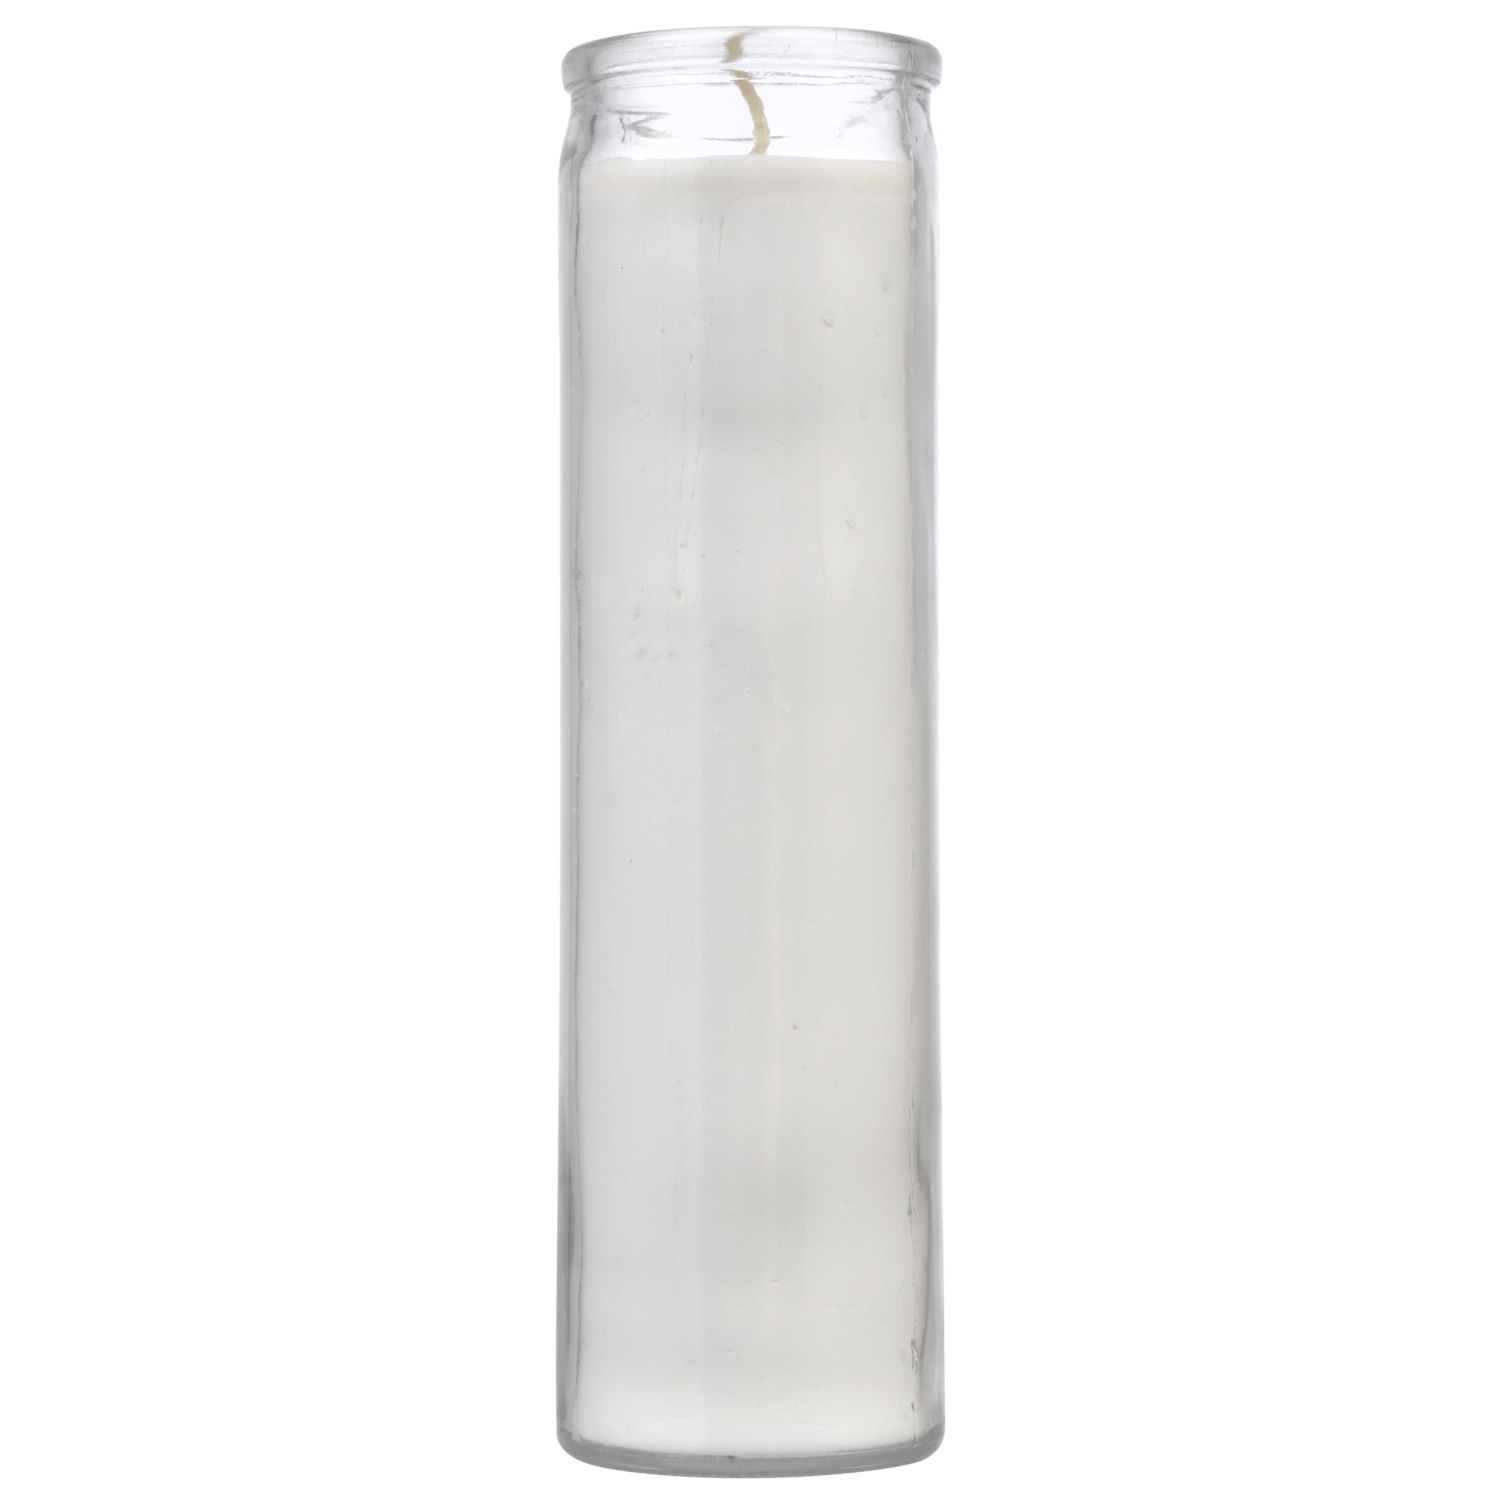 7 DAY UNSCENTED CANDLE IN GLASS GOLD